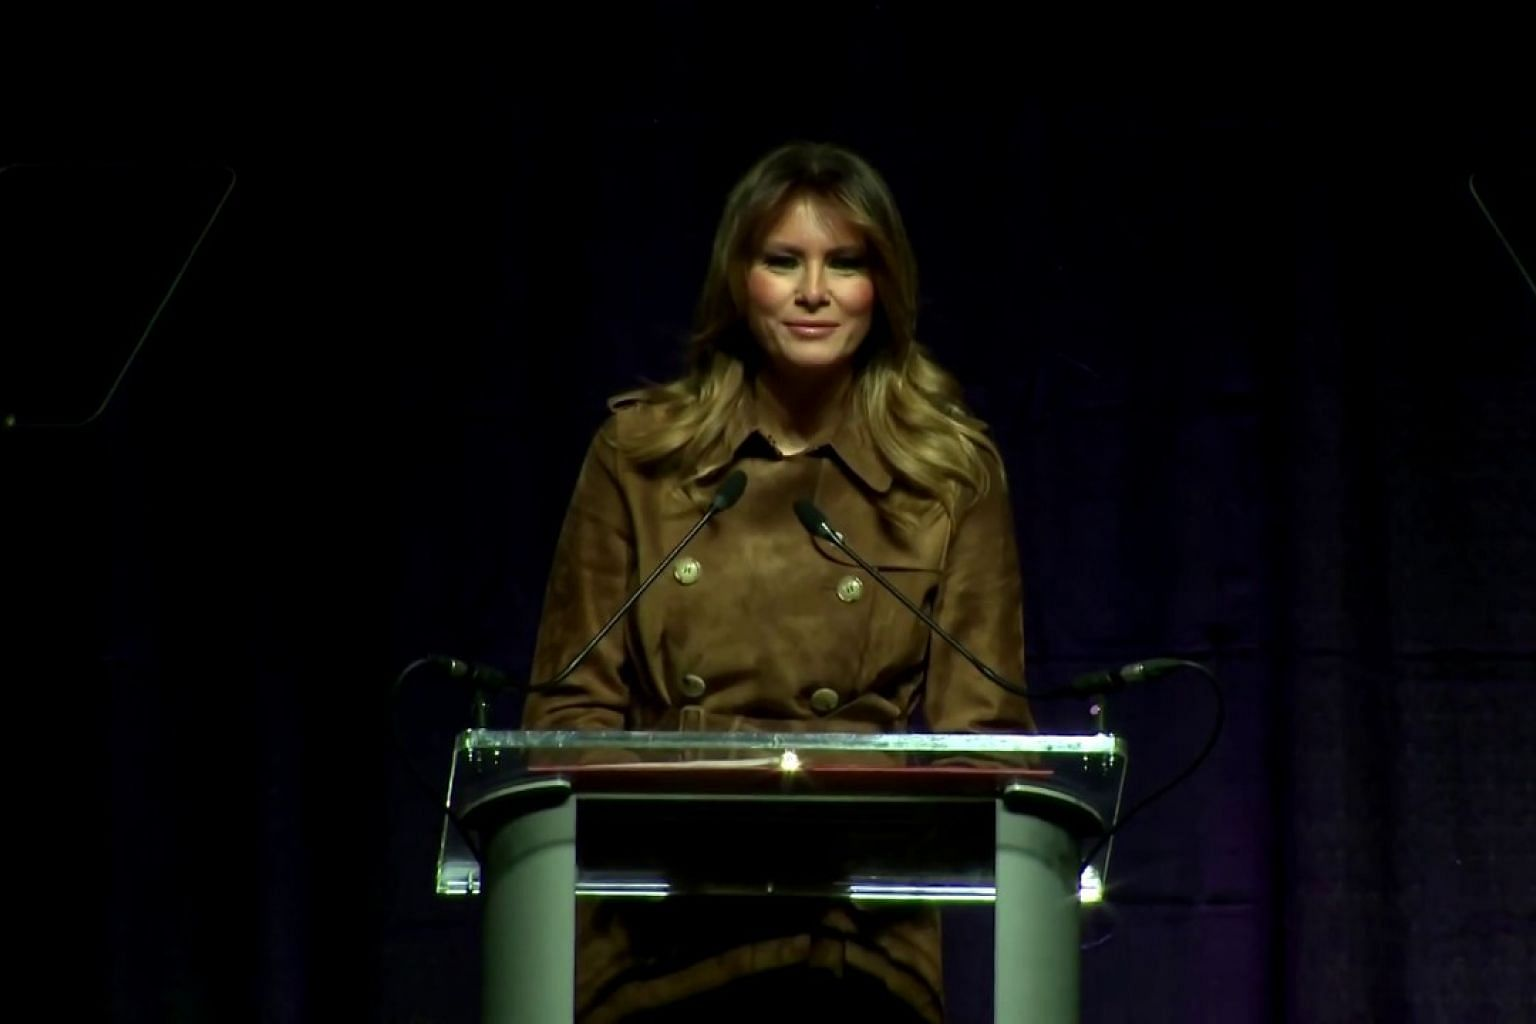 Melania Trump booed at youth opioid awareness event in Baltimore